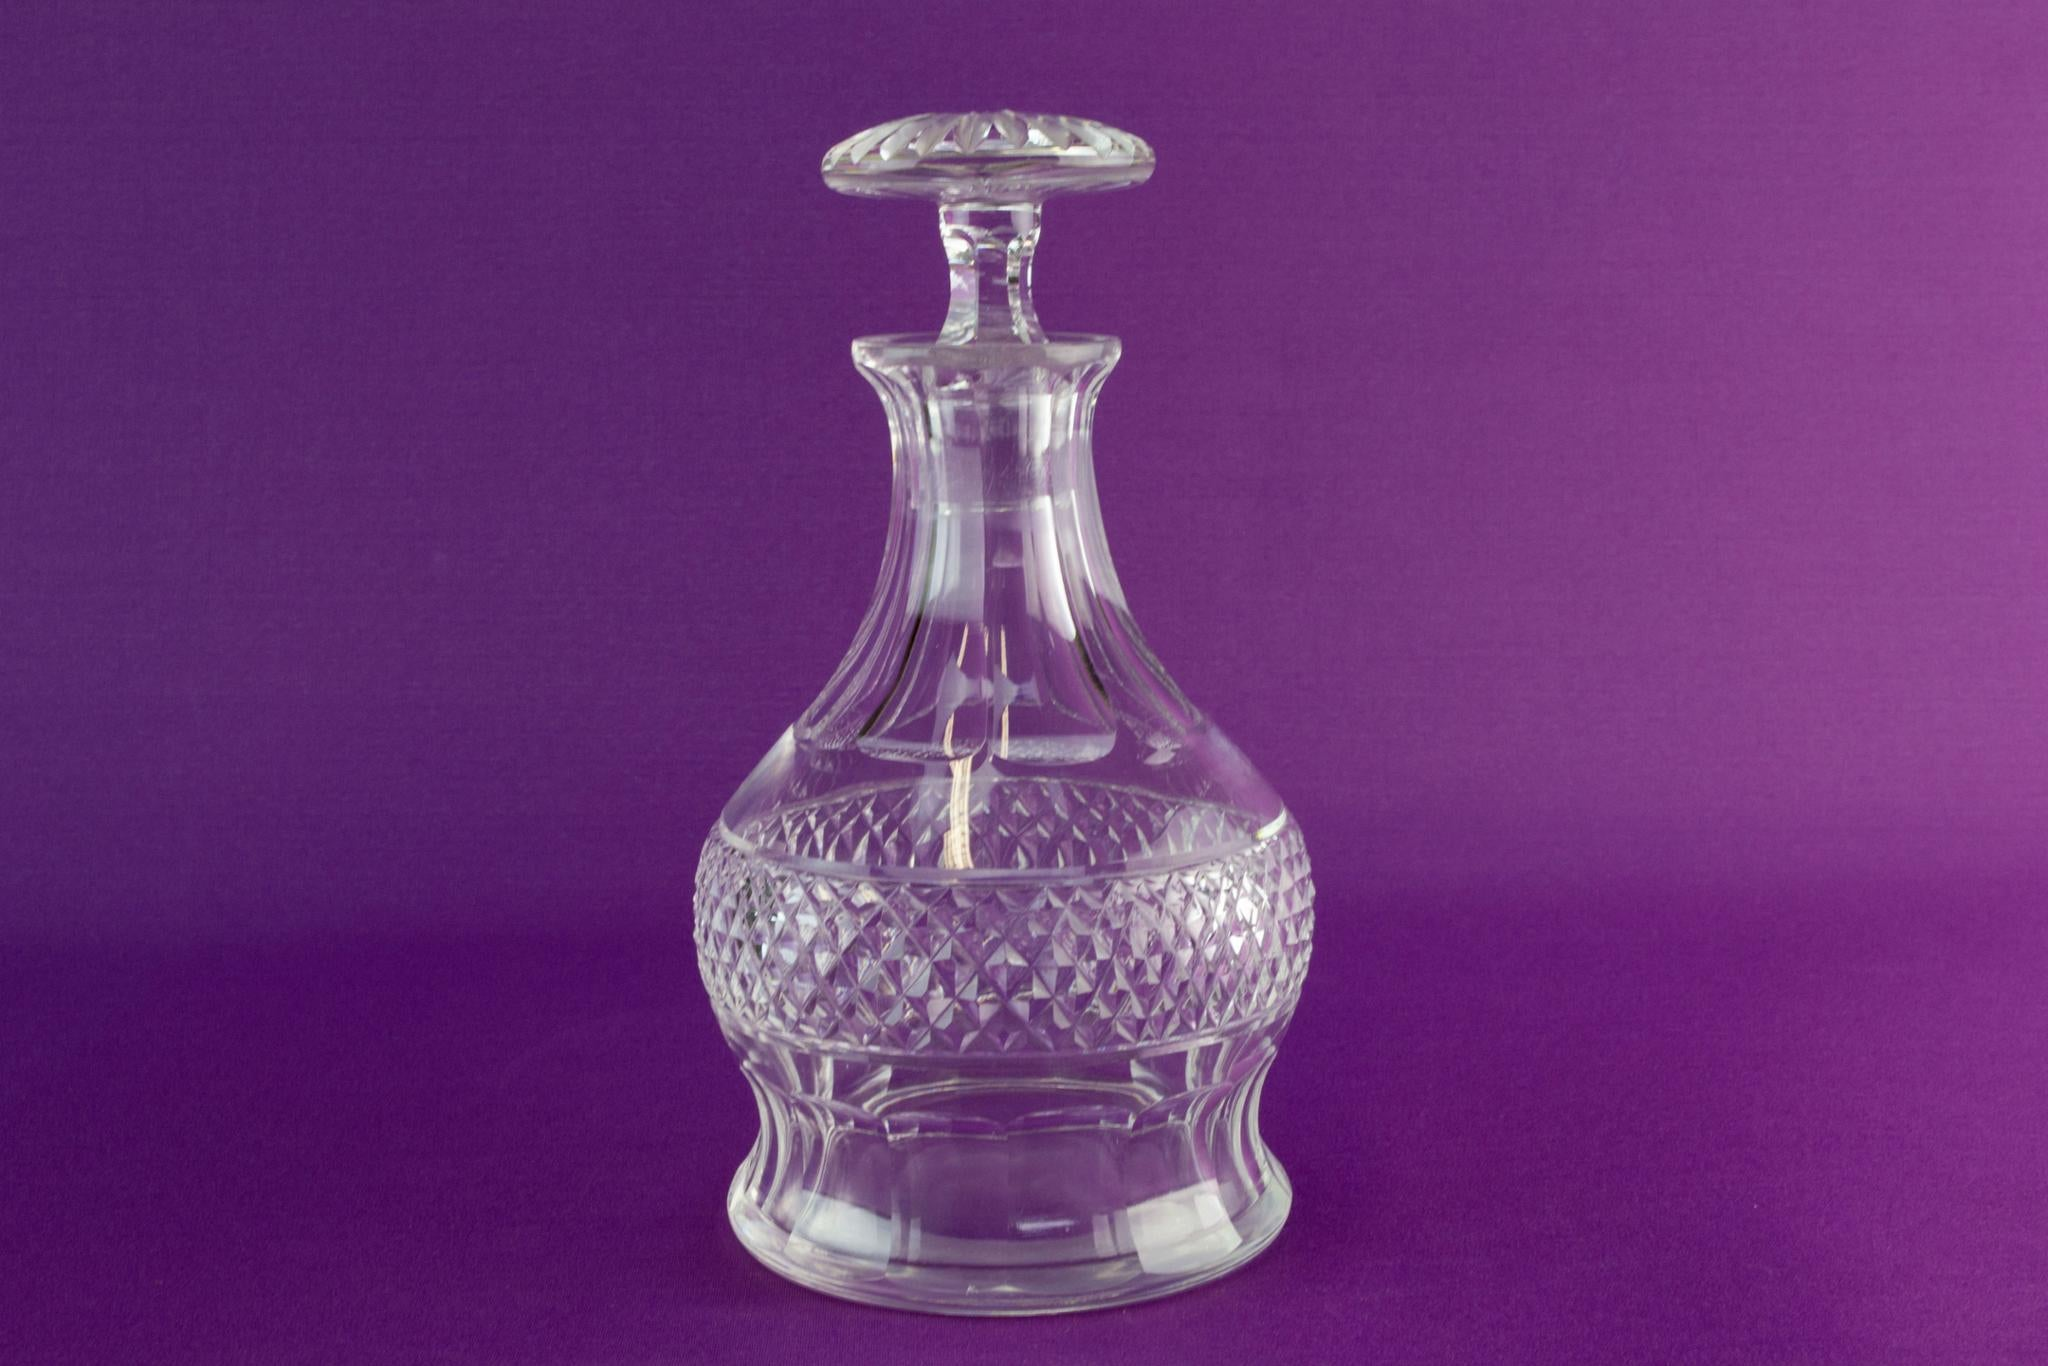 Cut glass thistle decanter, early 1900s